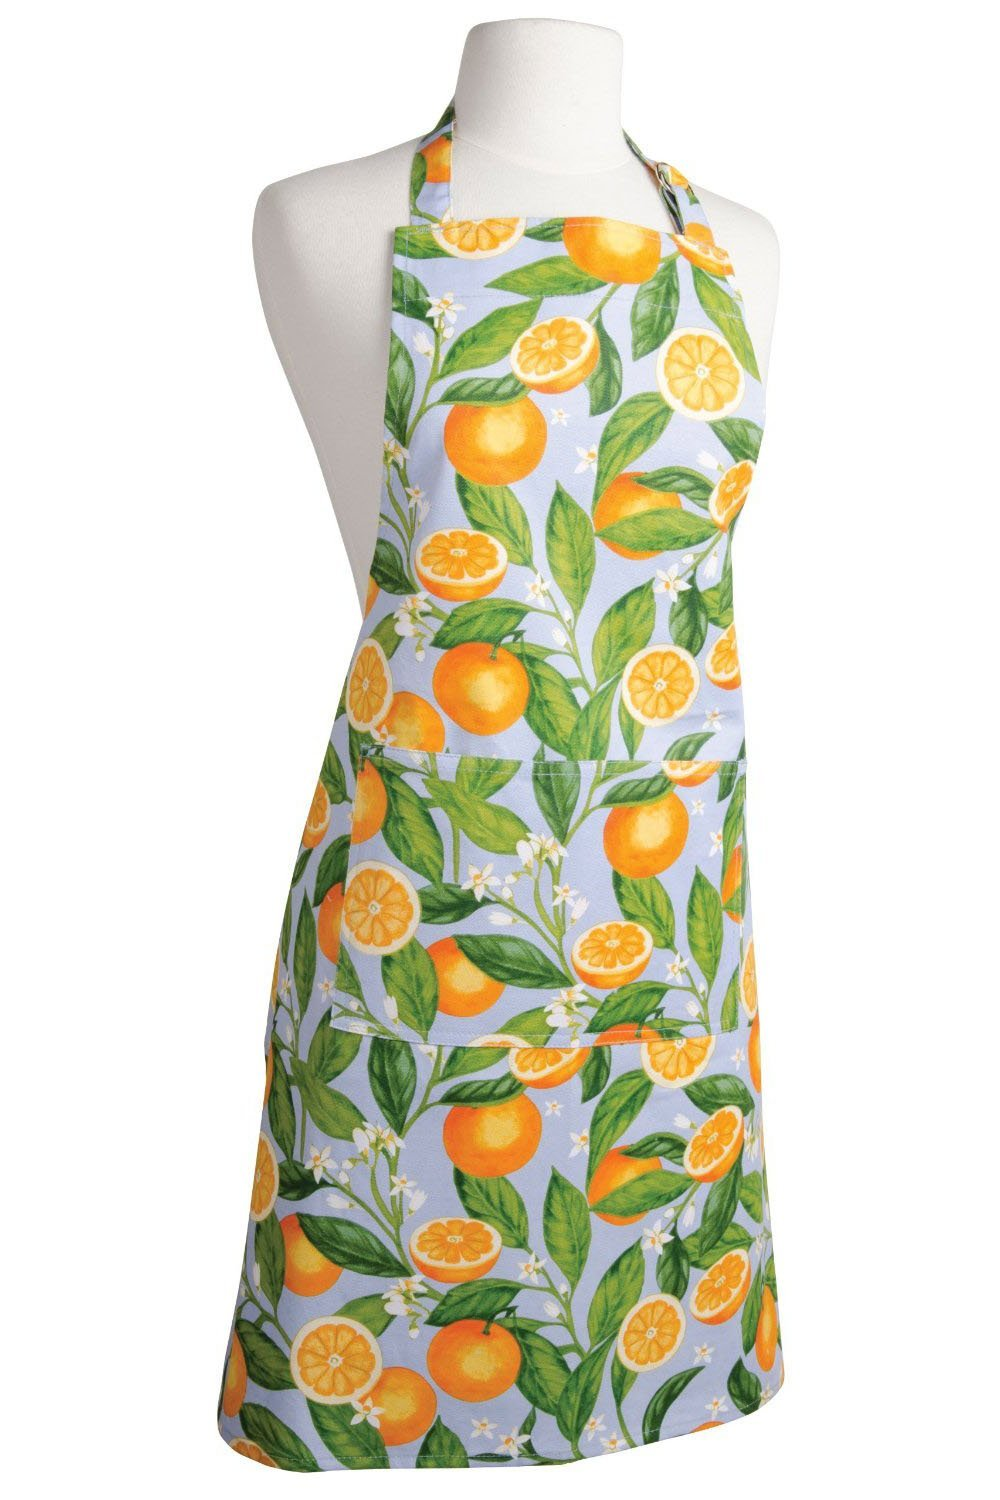 Fresh Squeezed Modern Apron